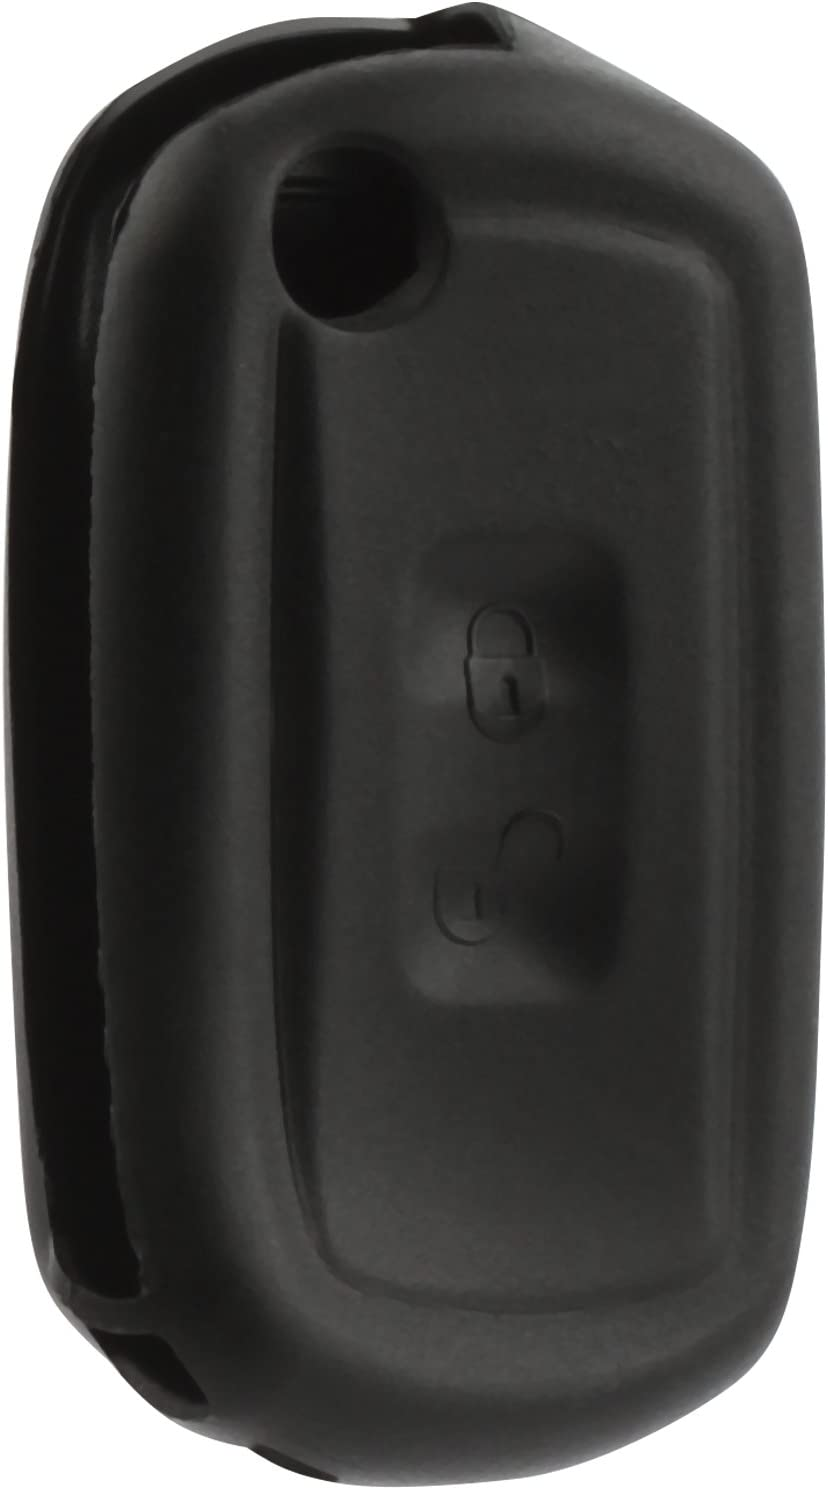 Key Fob Keyless Entry Remote Protective Cover Case Fits Land Rover LR3 / Range Rover Sport 2006 2007 2008 2009